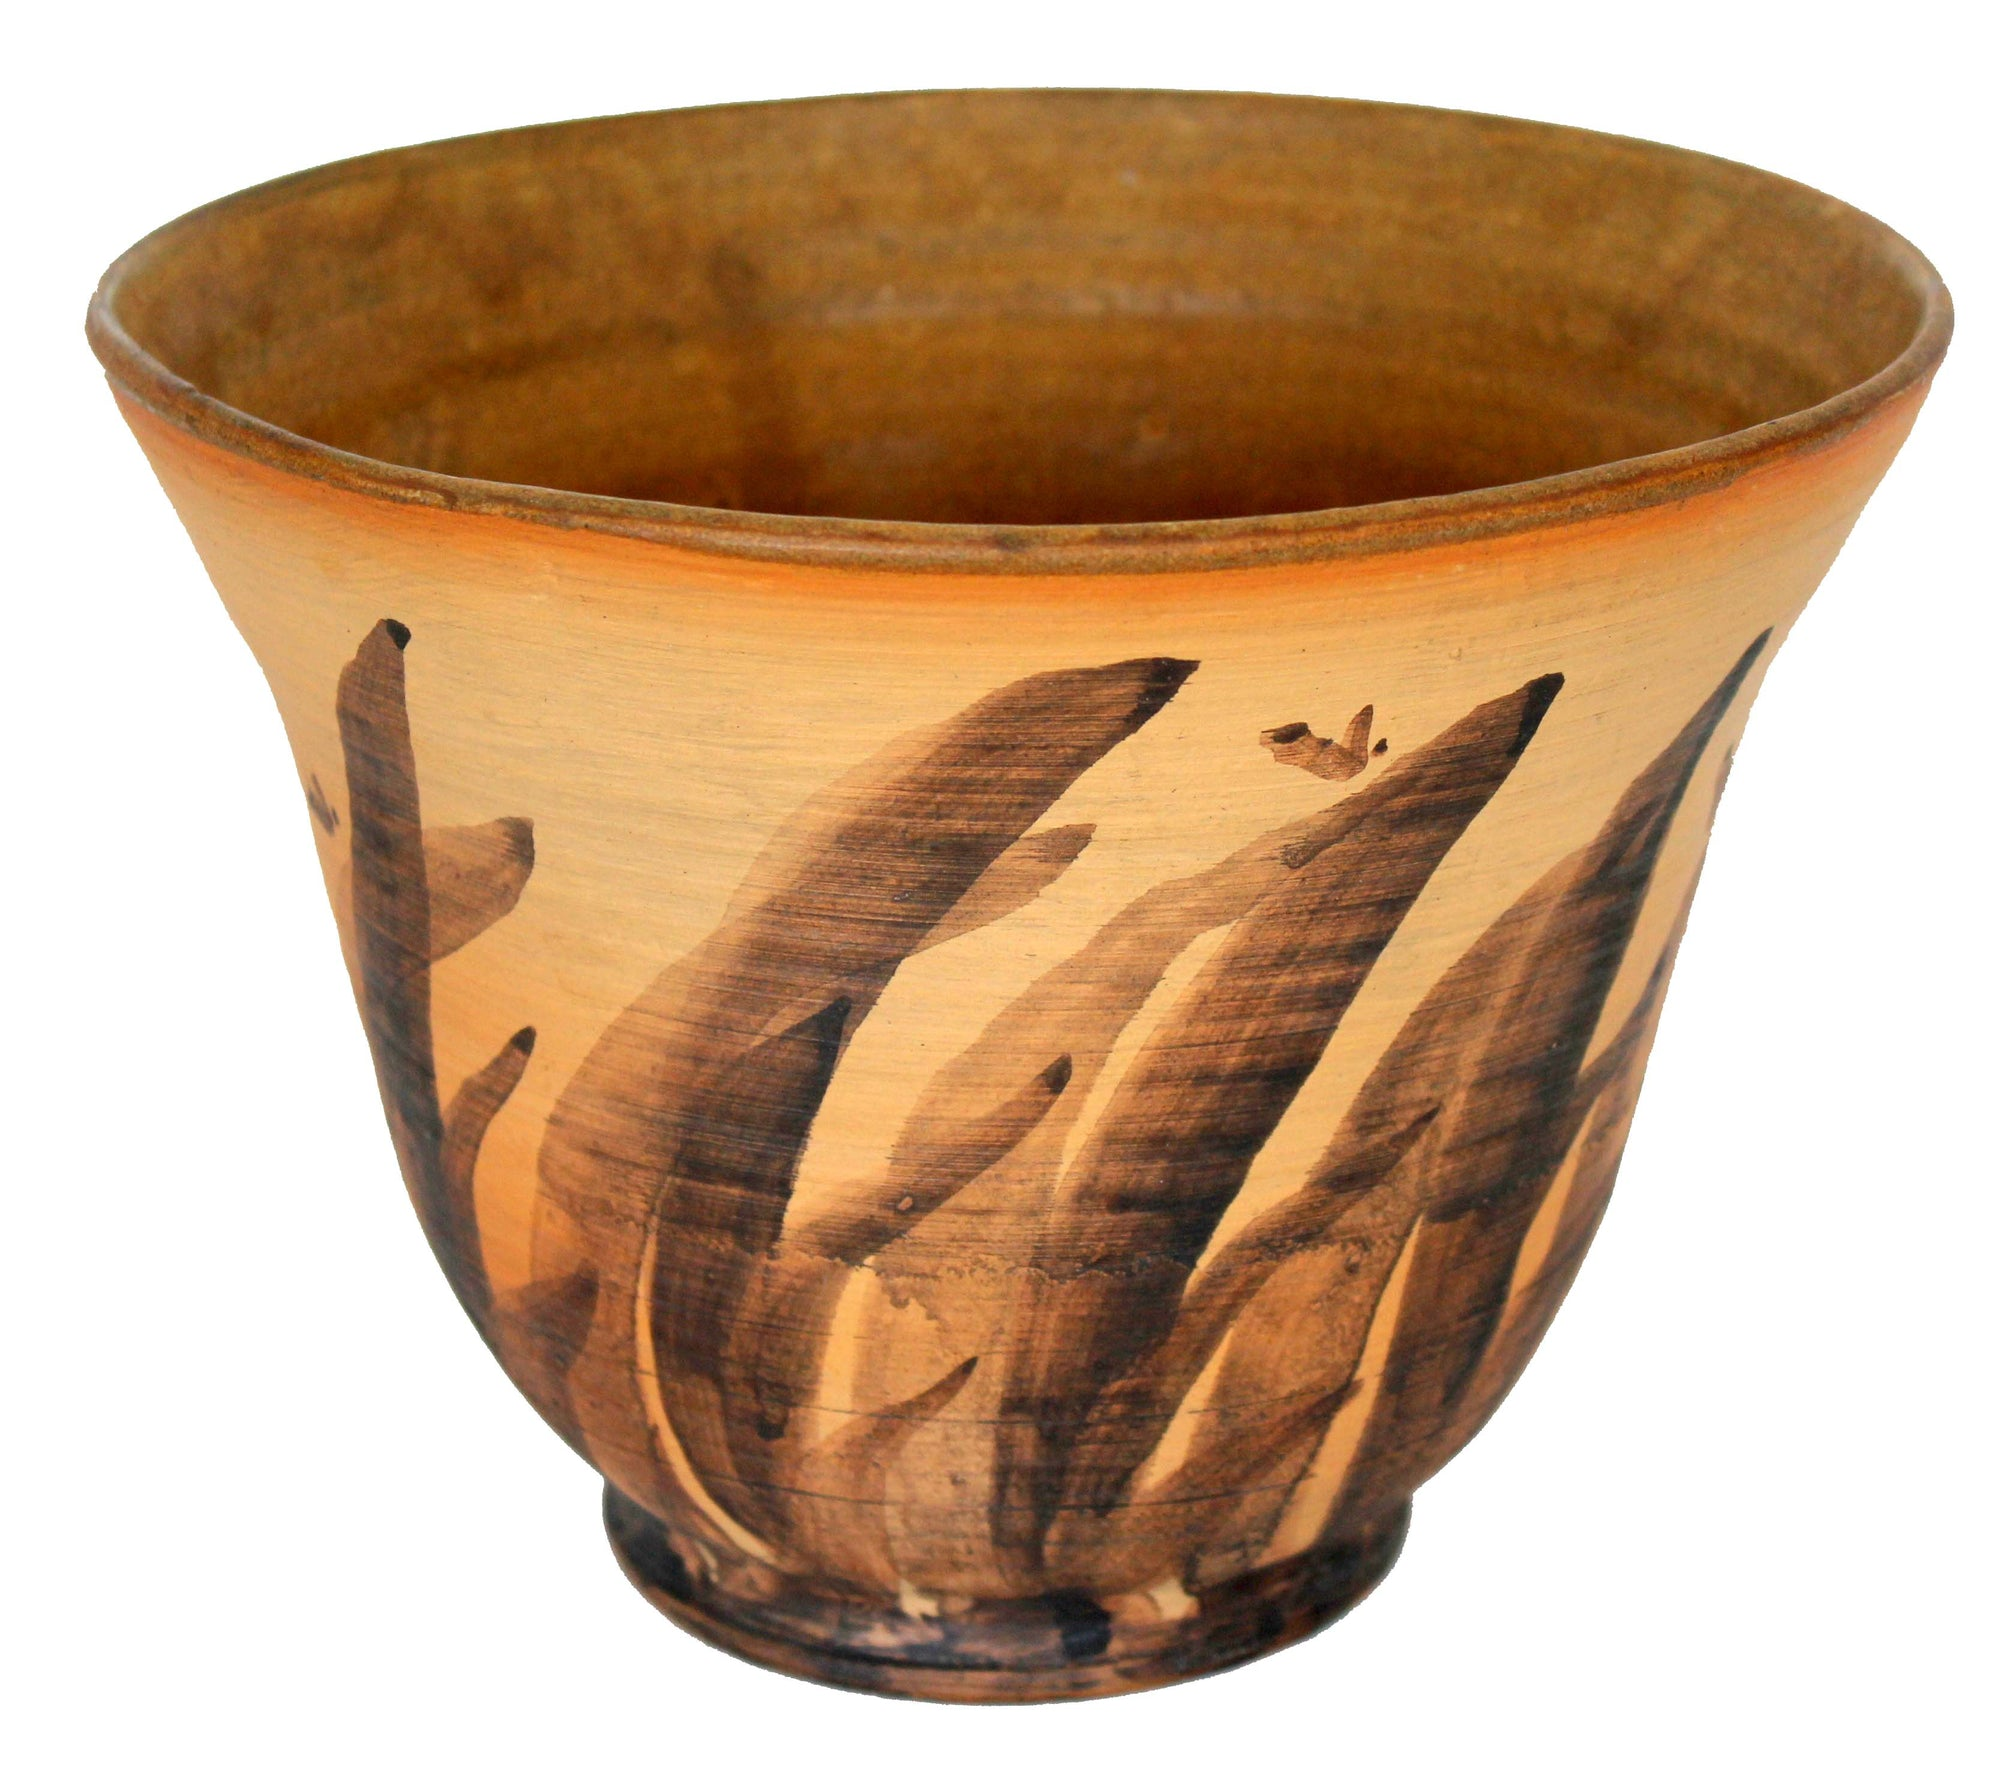 Brown Vessel with Abstracted Brushstroke Patter<br>Mid Century Ceramic<br><br>#19173